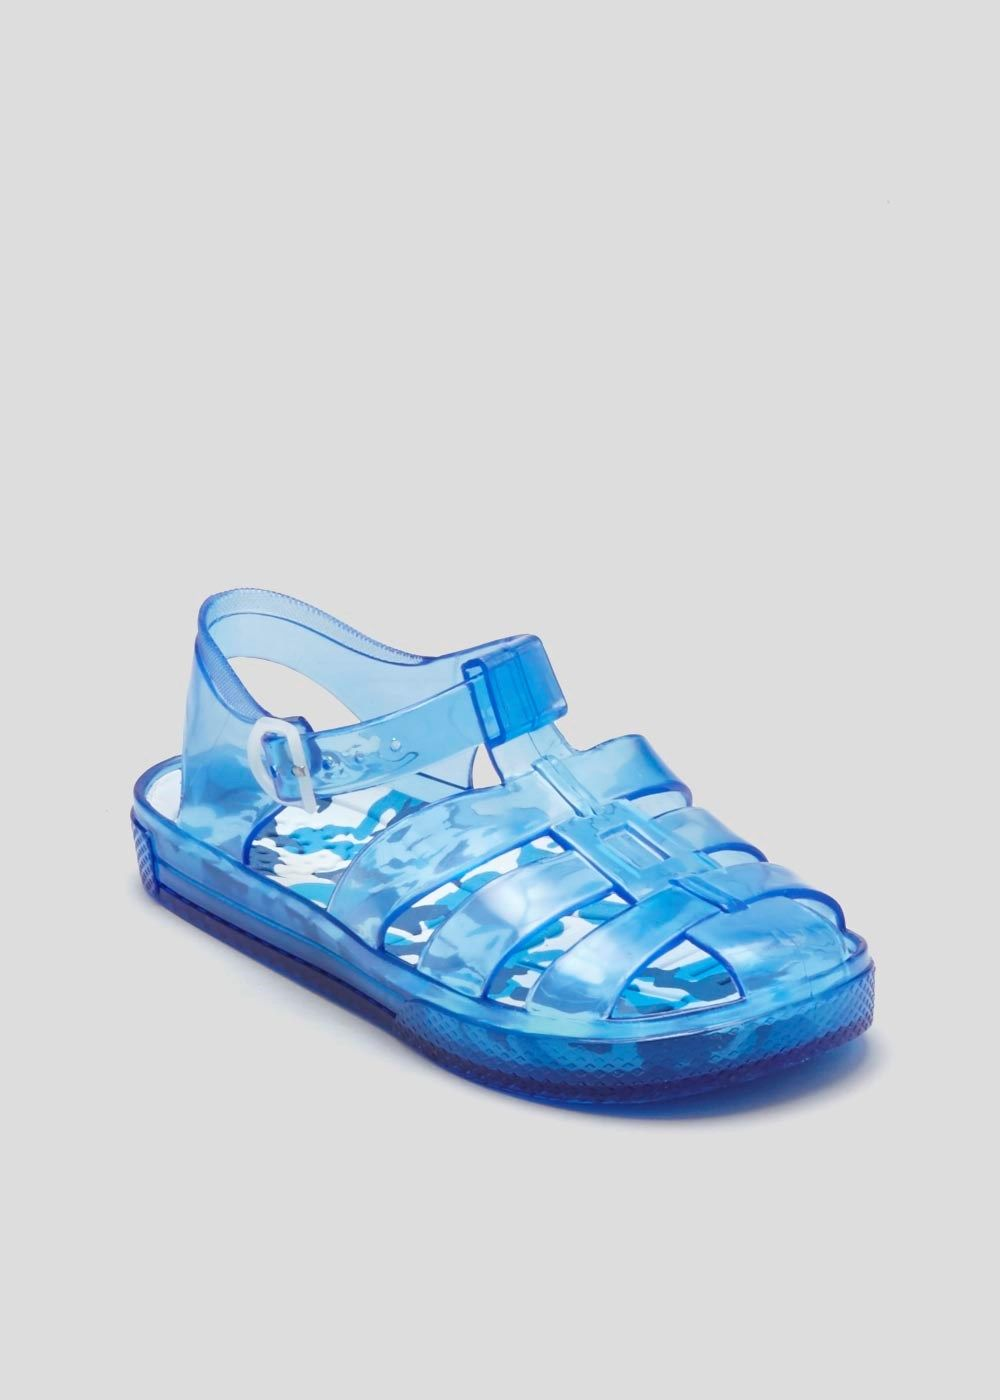 5bce2d70a Boys Jelly Shoe (Younger 4 - Older 12) – Matalan